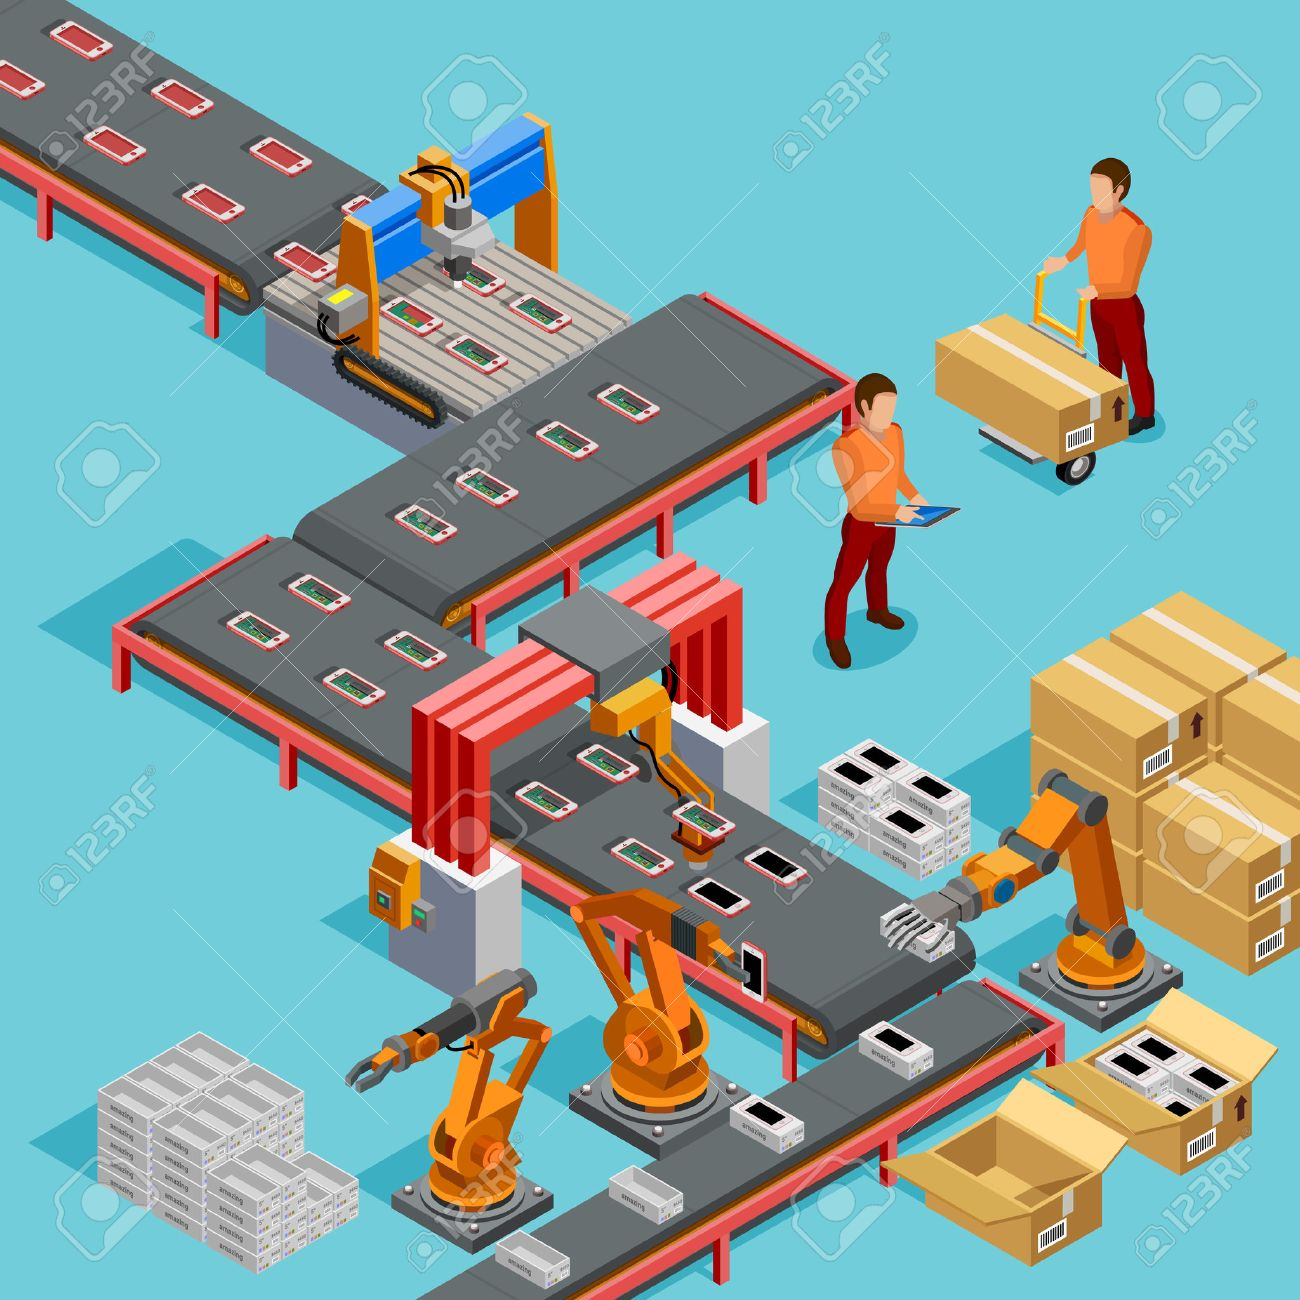 Automated factory assembly line with robotic arm and conveyor belt controlled manufacturing process isometric poster vector illustration Stock Vector - 68912455